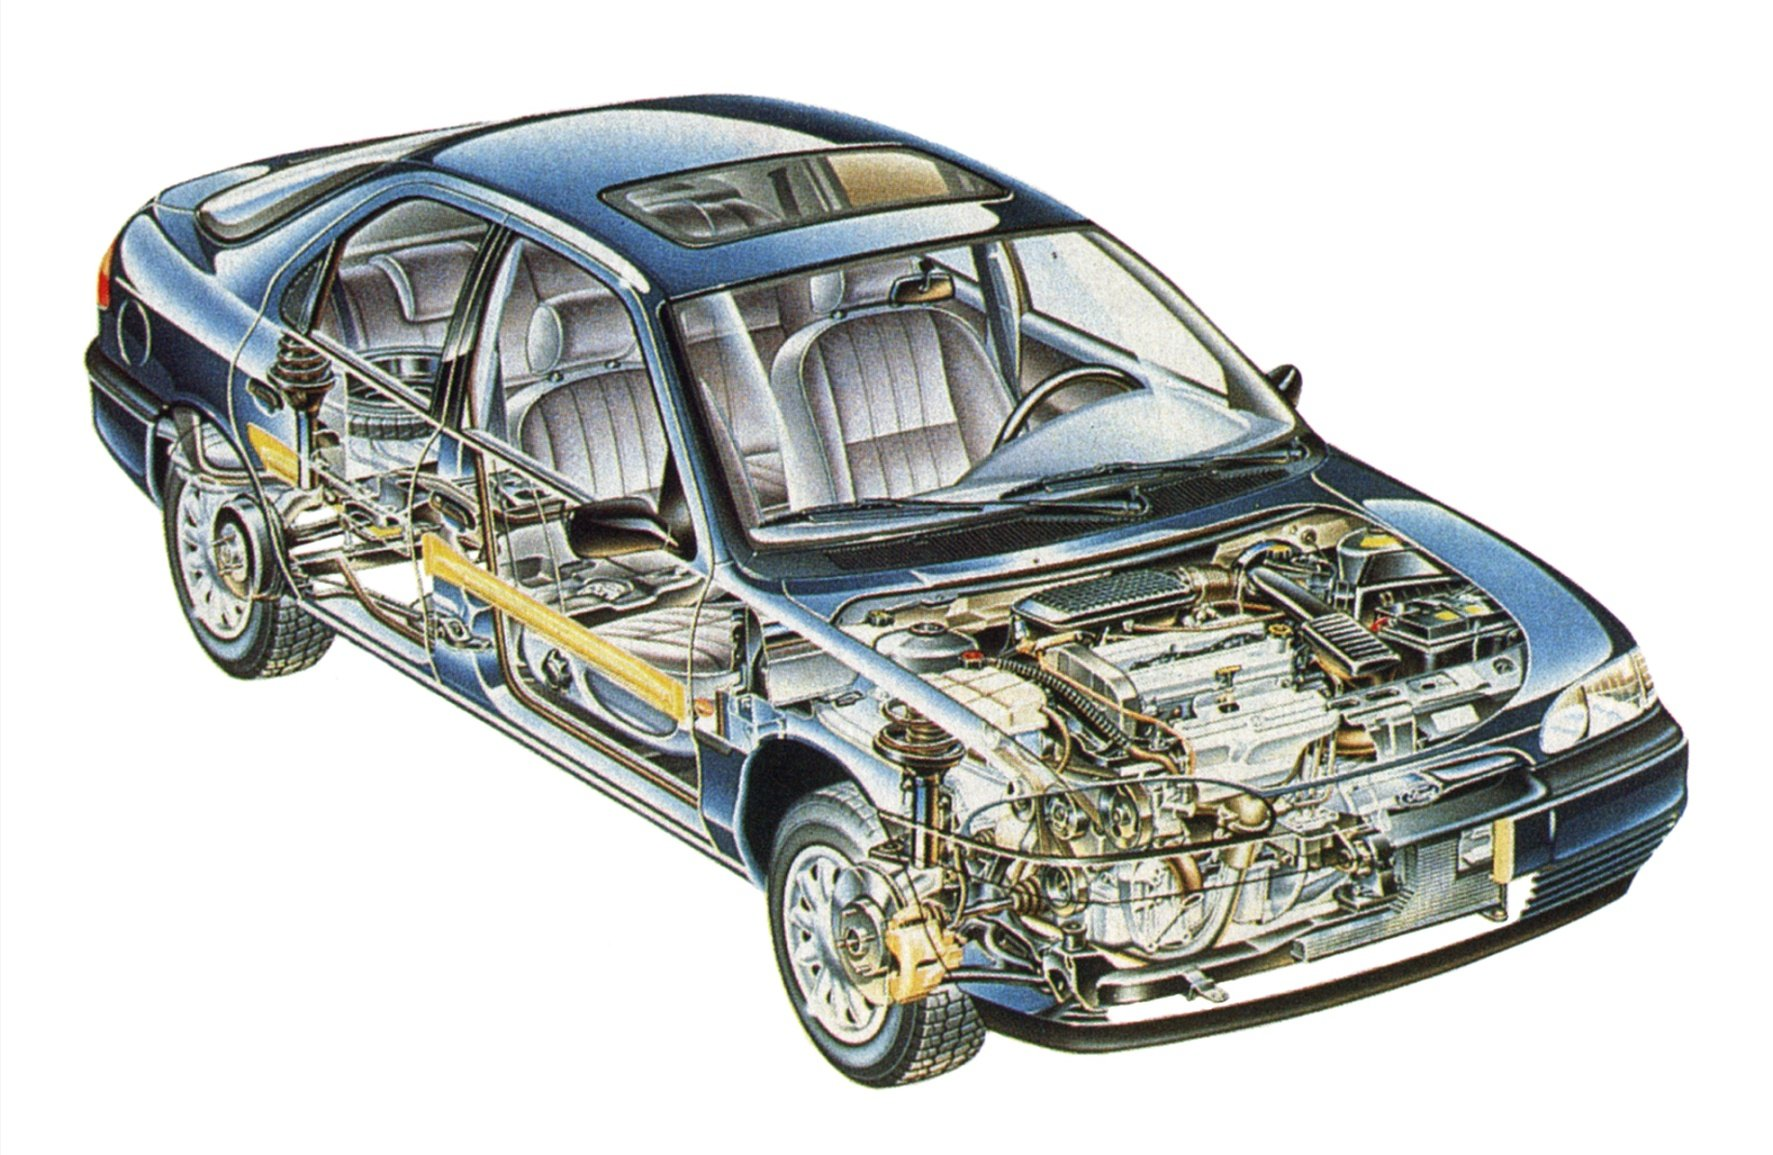 1993 ford mondeo cars technical cutaway wallpaper 1773x1155 694666 wallpaperup